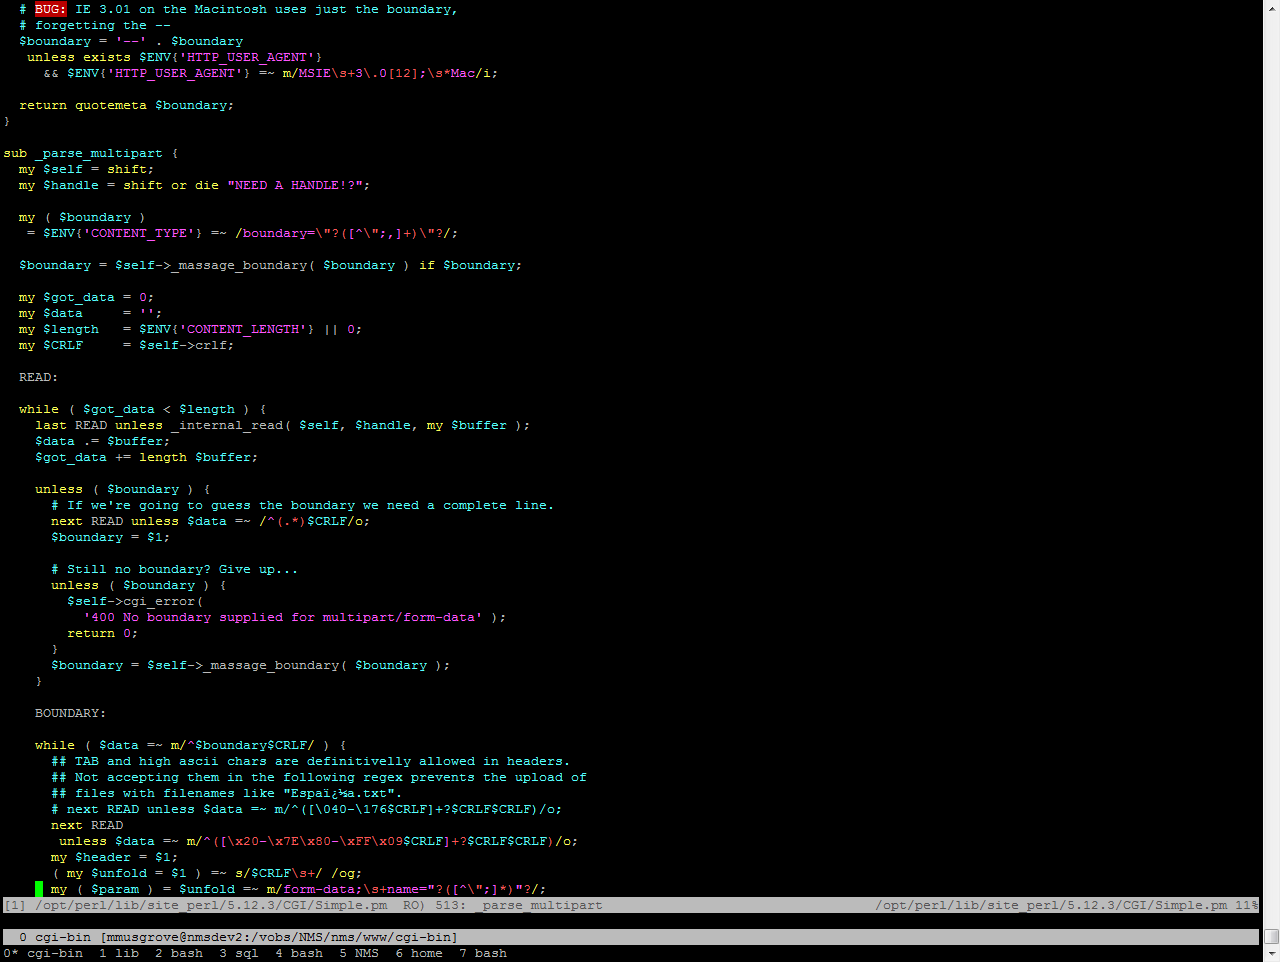 http://blogs.perl.org/users/mr_muskrat/2012/03/19/vim.png